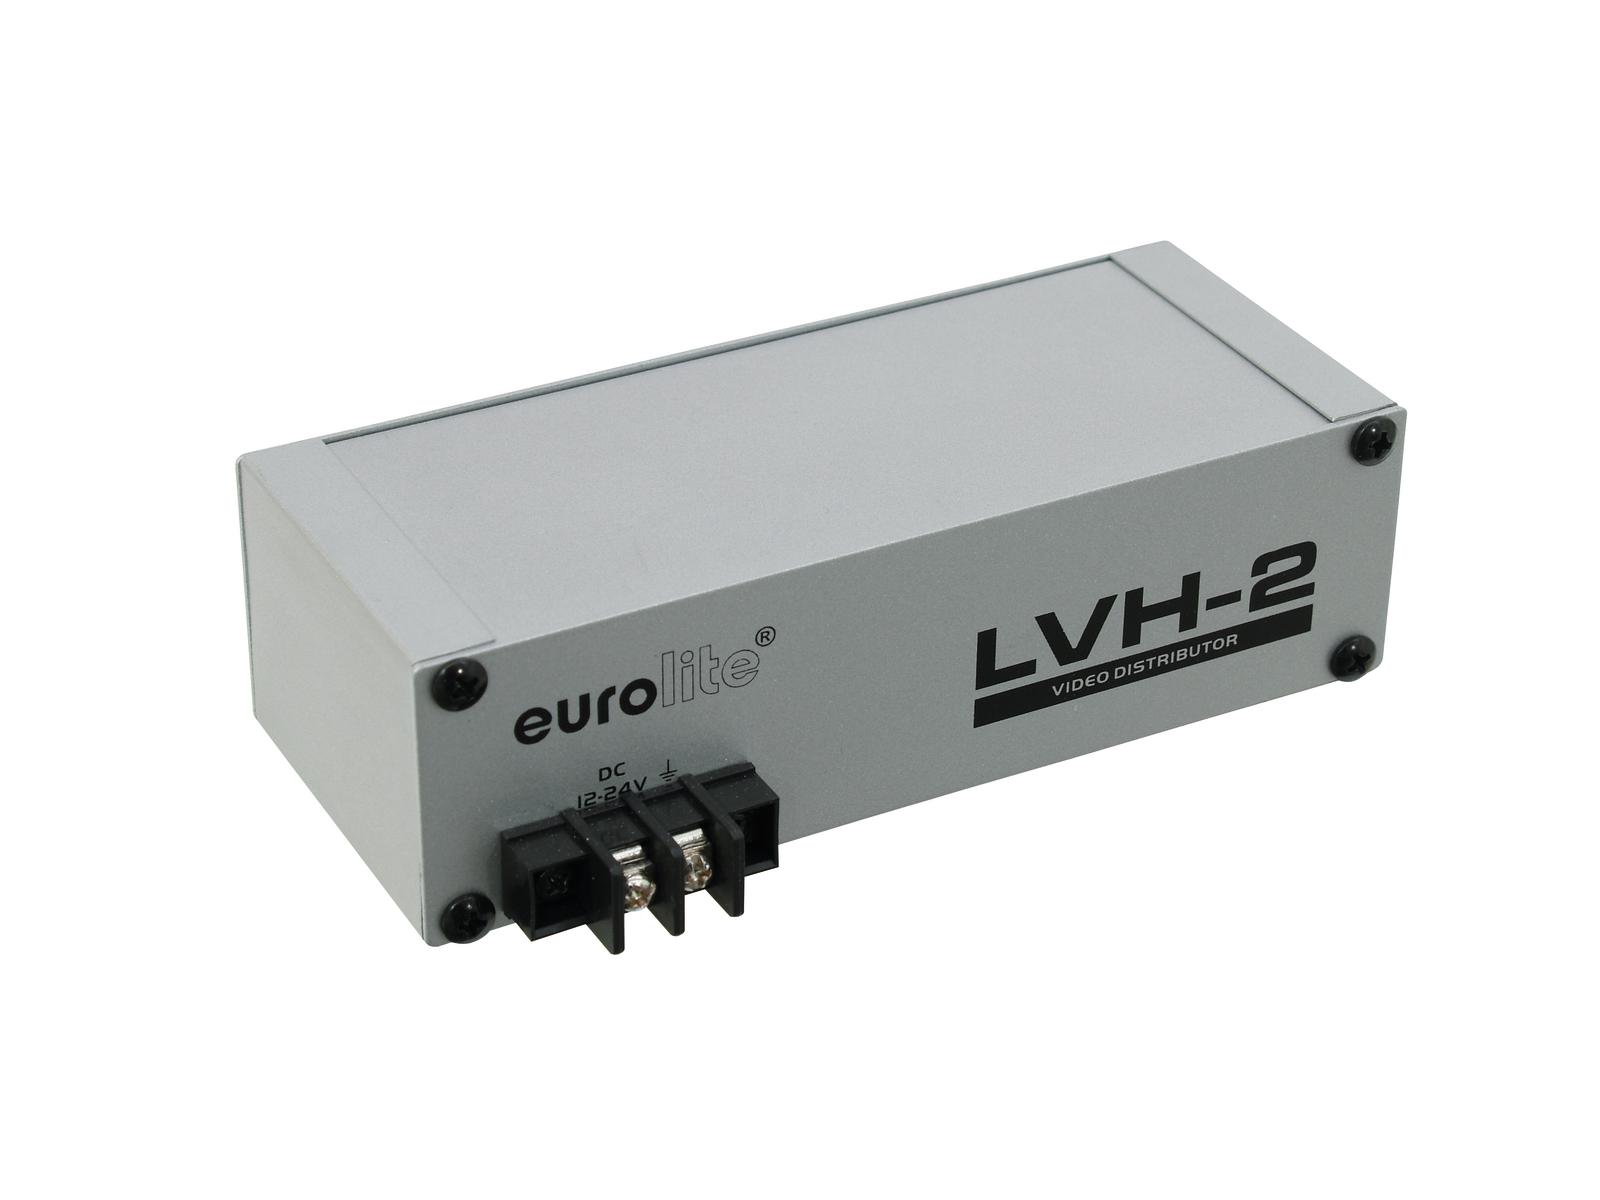 EUROLITE LVH-2 amplificatore di distribuzione Video